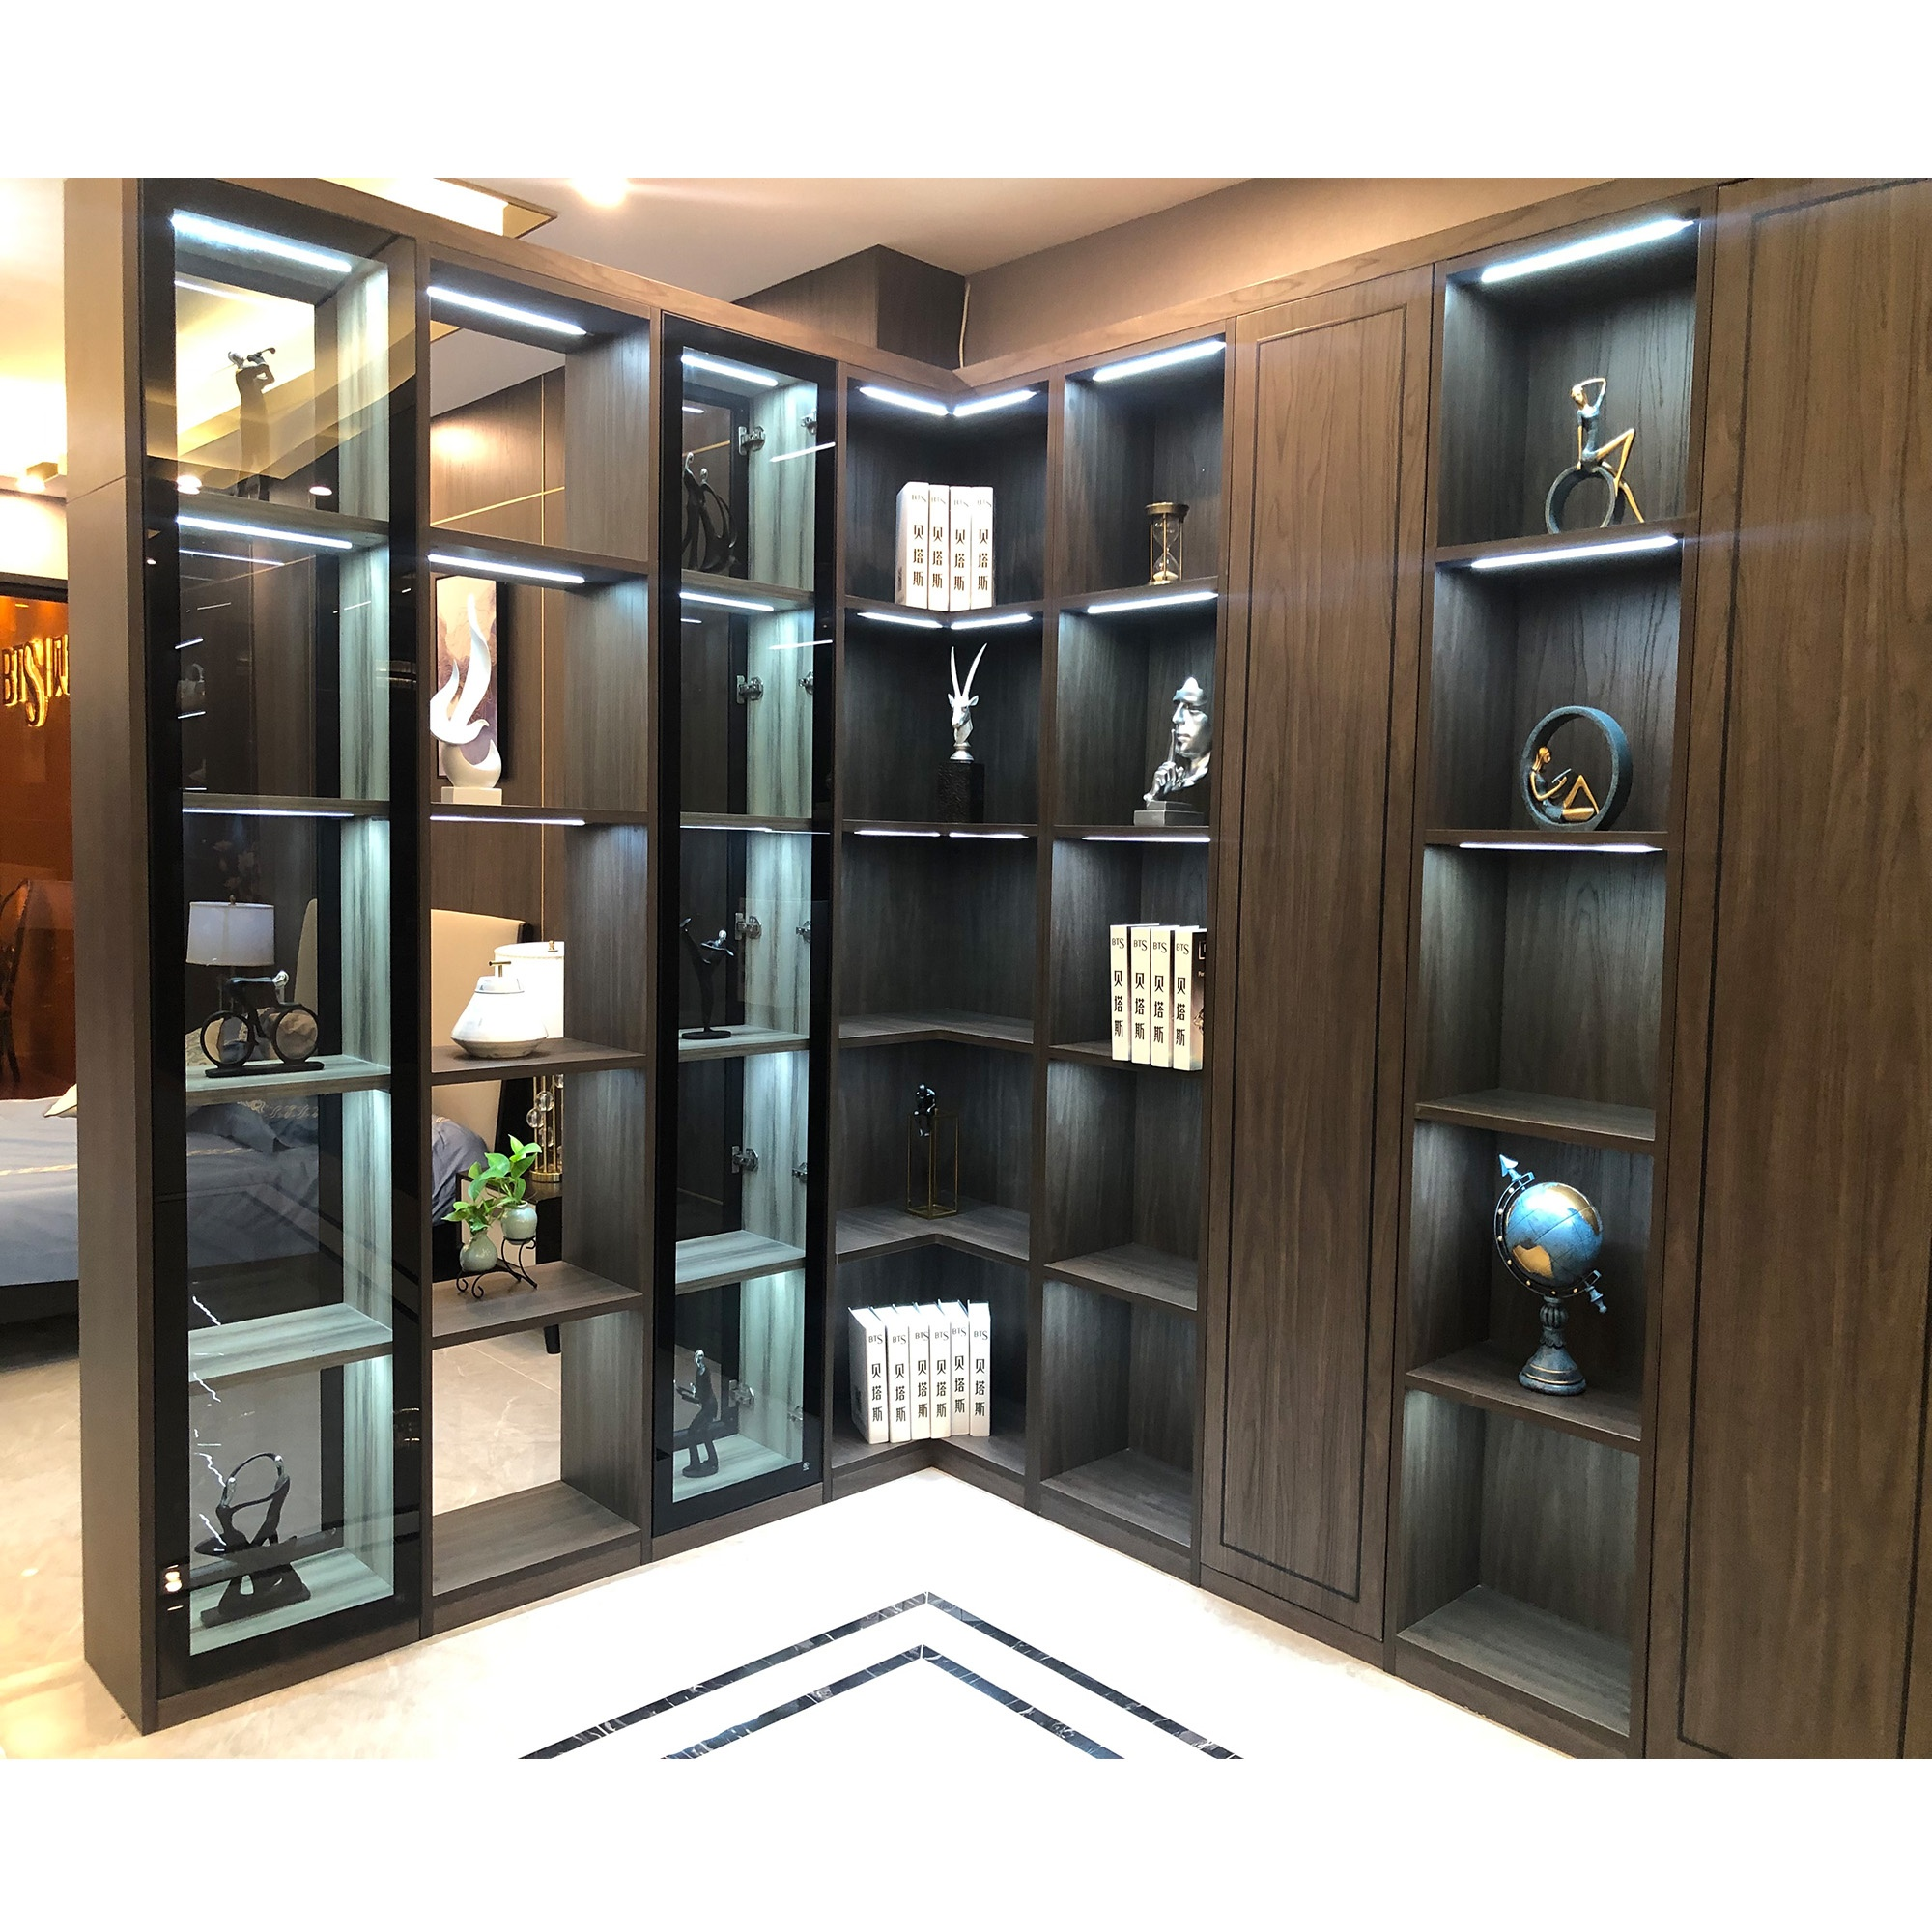 NICOCABINET Italian Design Custom Modern Wood Luxury Bookcase 5 Shelf Book Cabinet With Glass Door